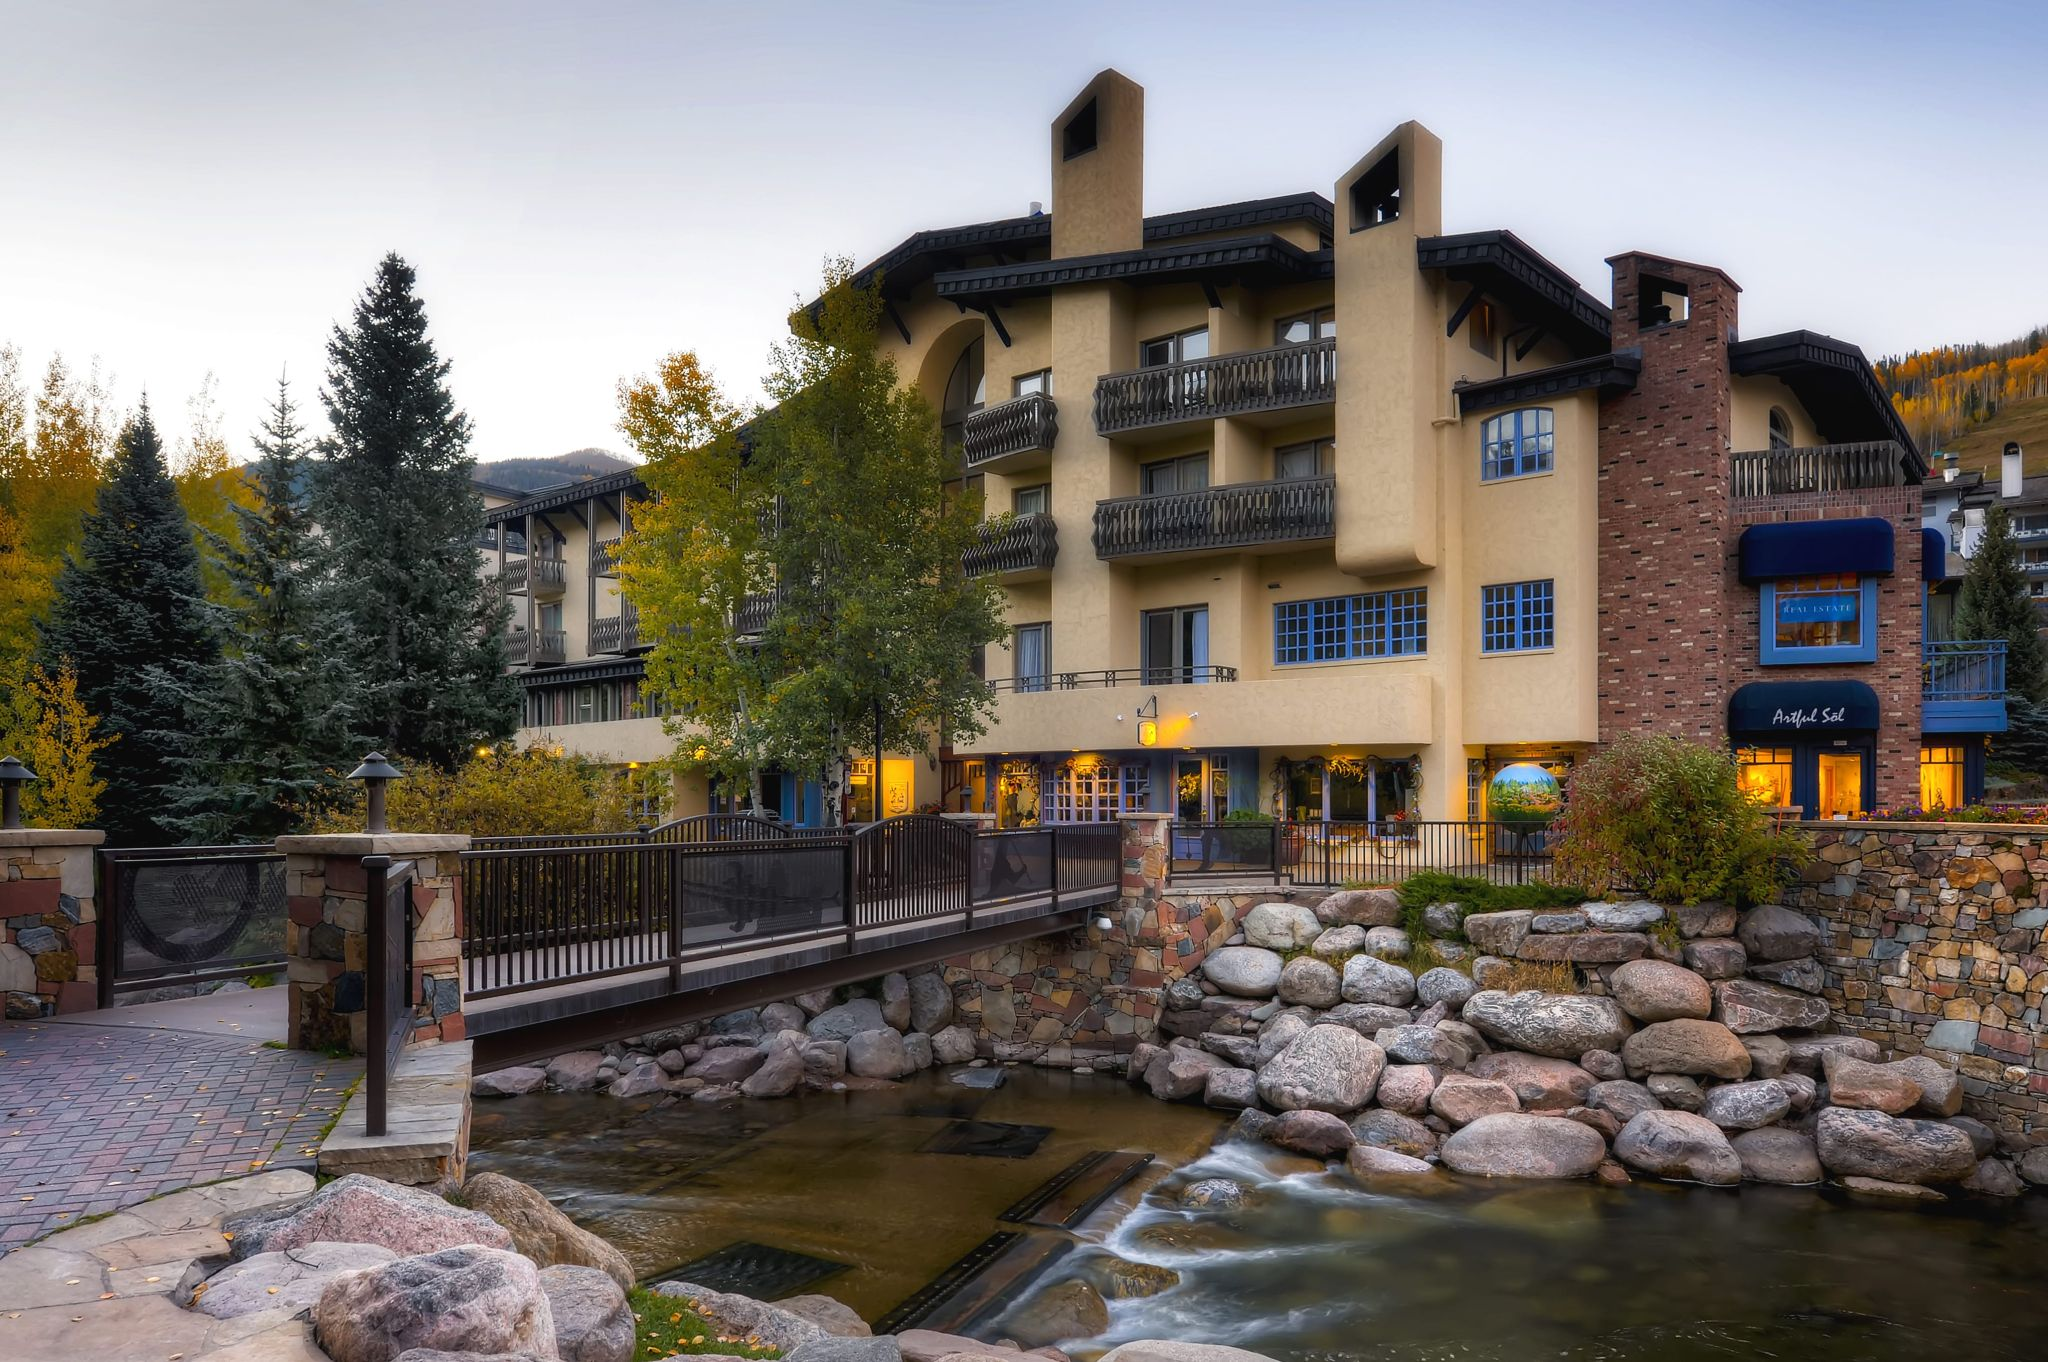 Tivoli Lodge Vail Sitzmark Lodge First Class Vail Co Hotels Gds Reservation Codes